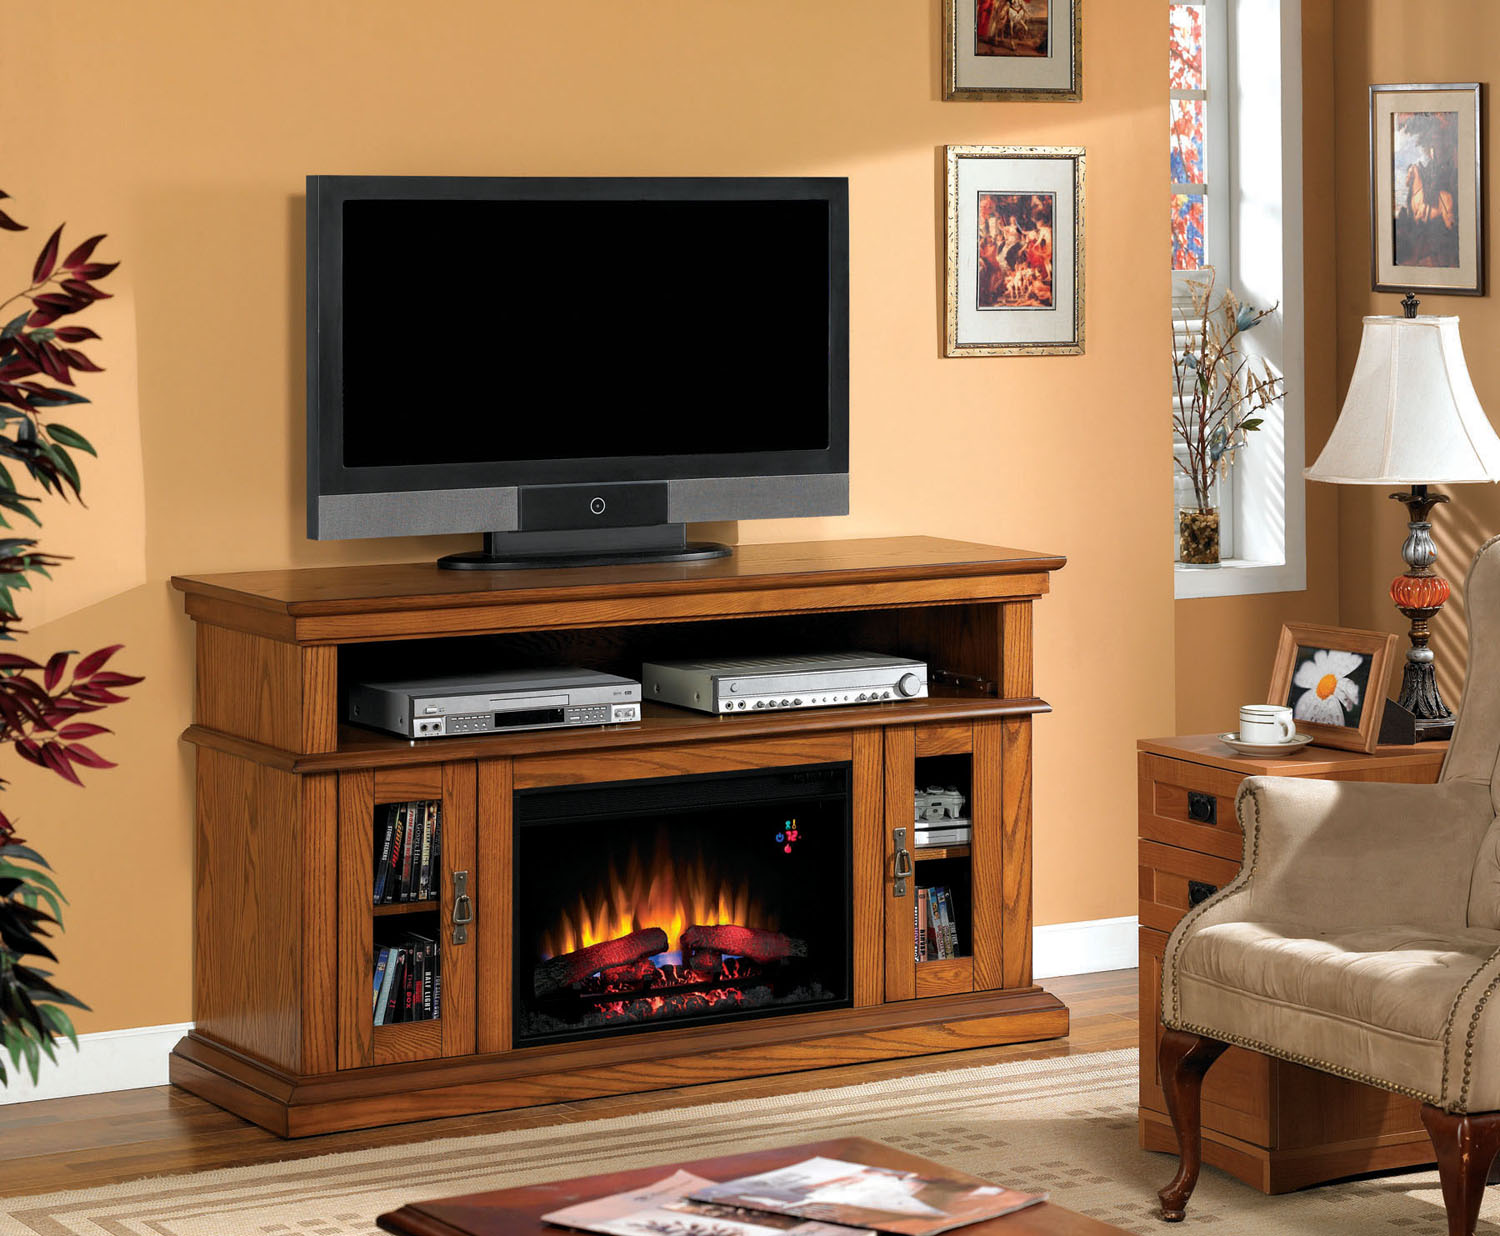 Classicflame Brookfield Electric Fireplace Twin Star Home